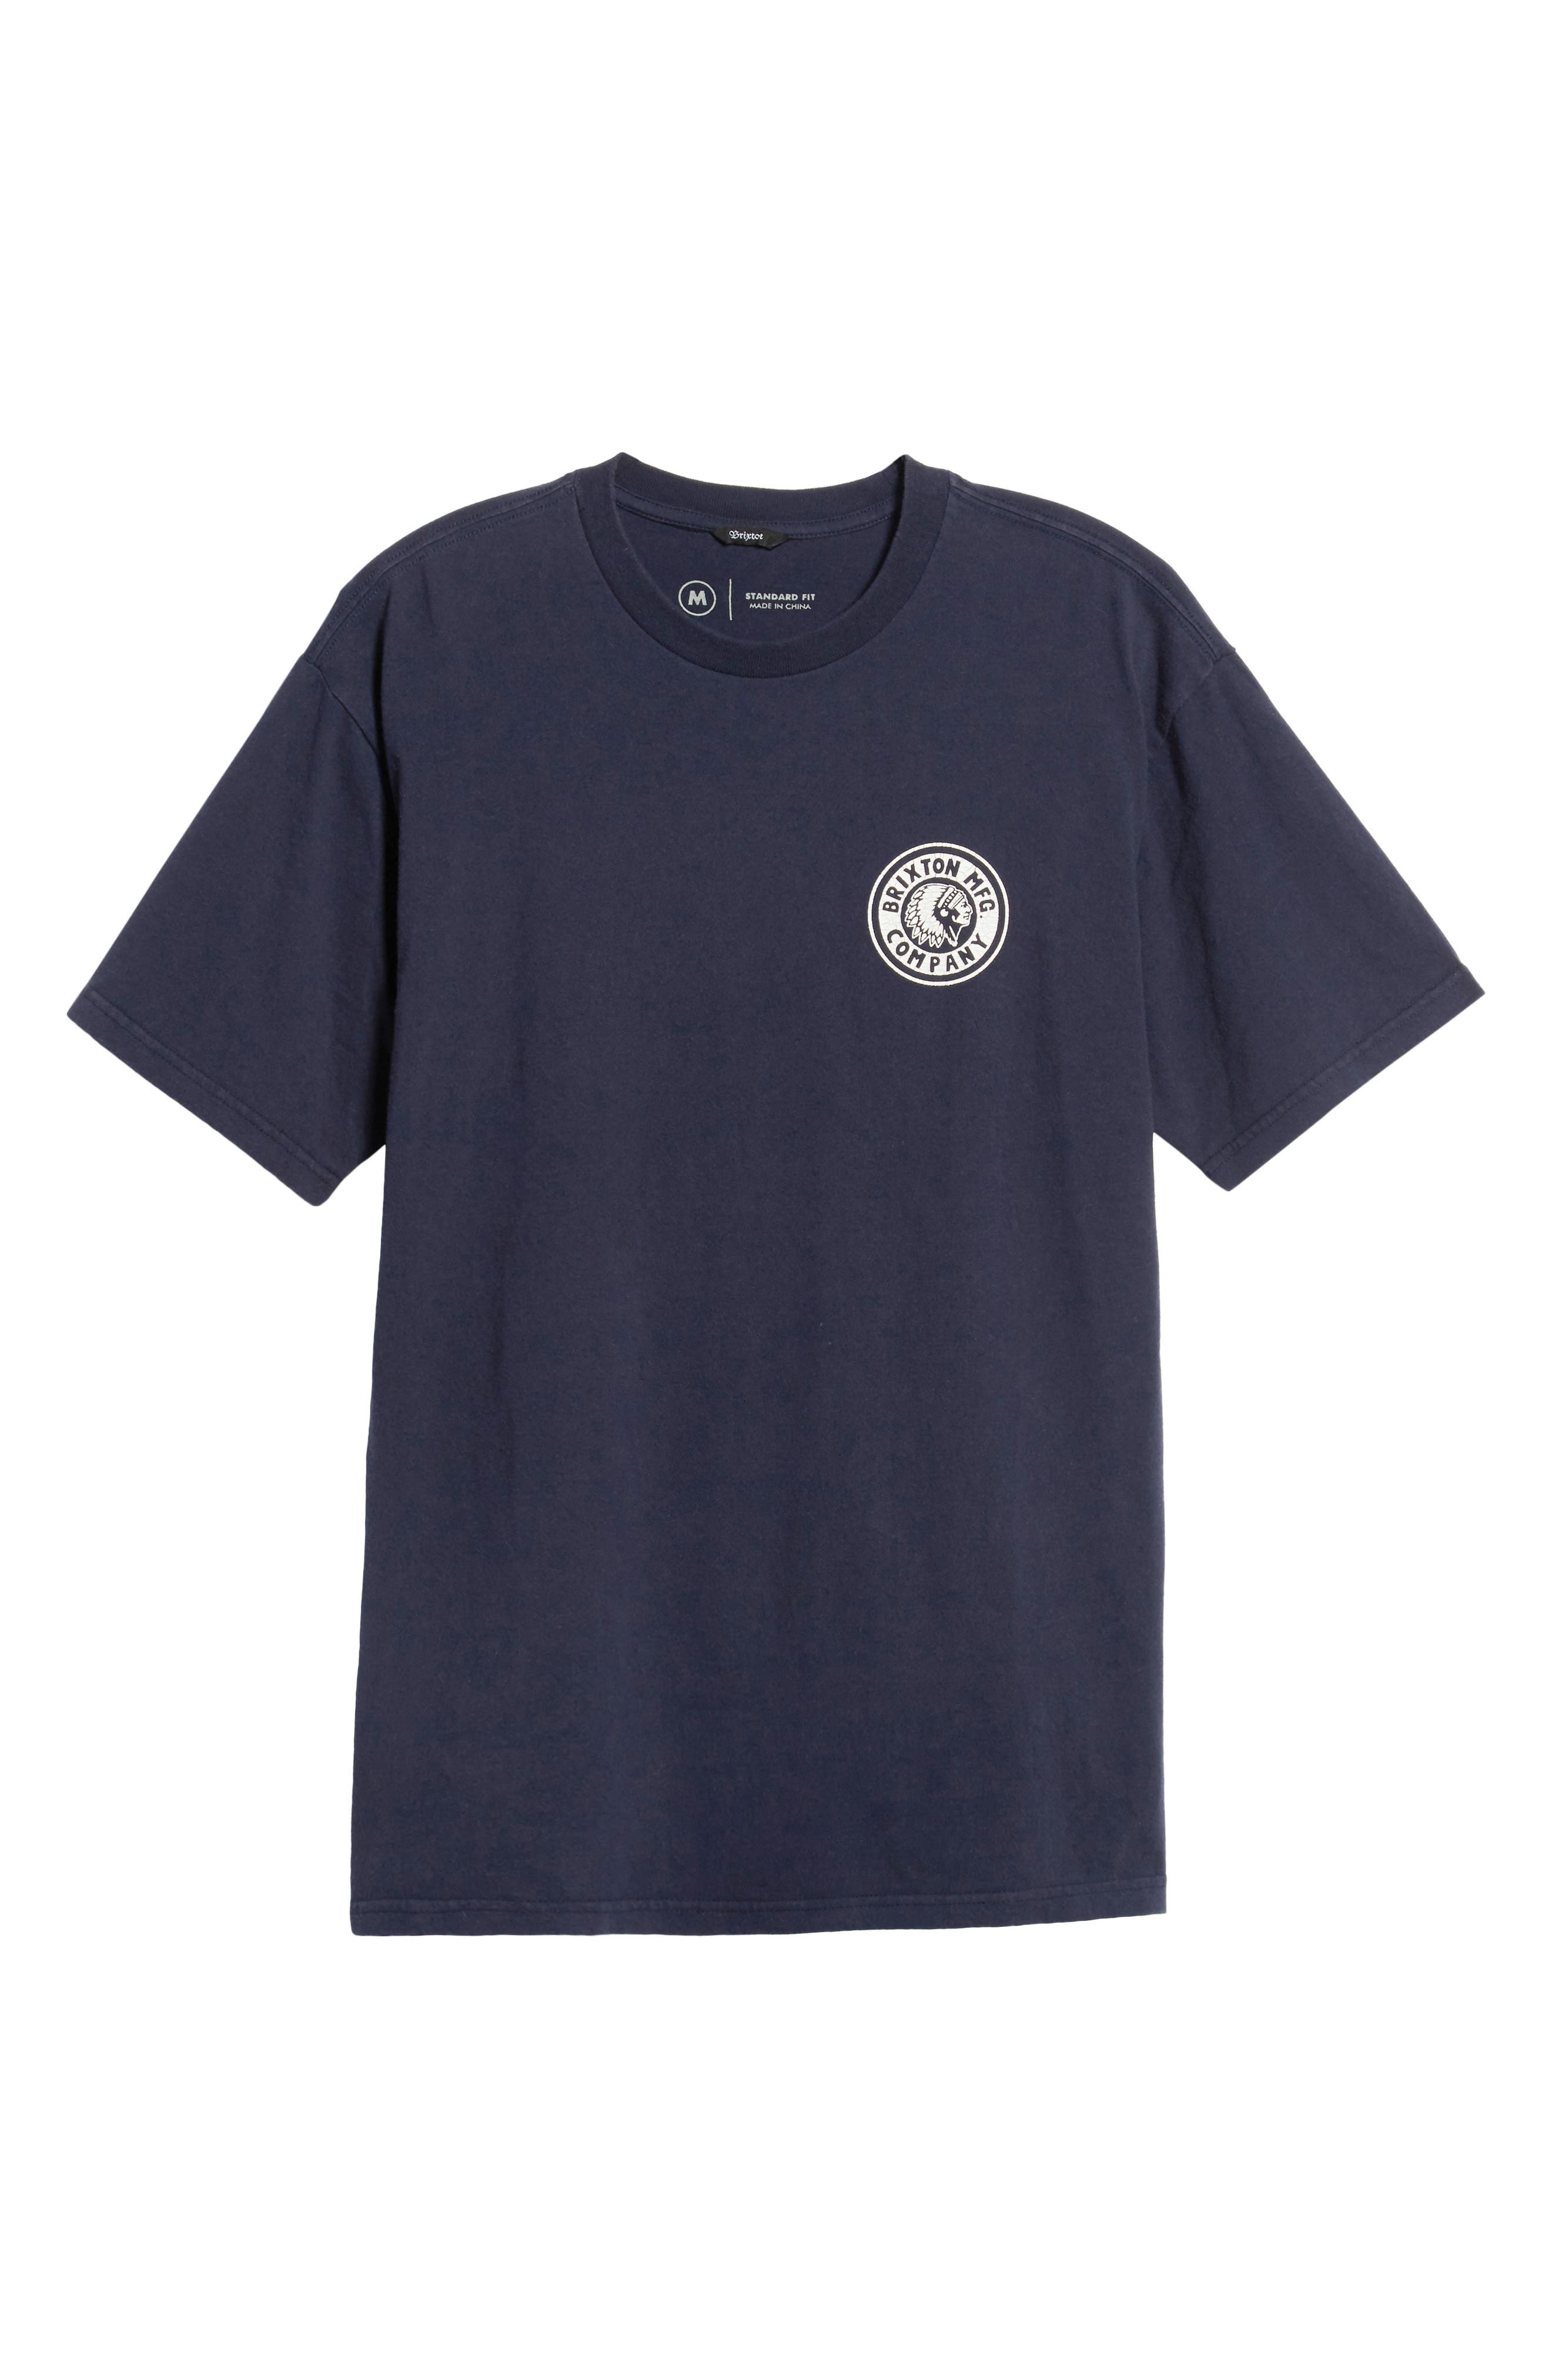 Rival II Graphic T-Shirt,                             Alternate thumbnail 6, color,                             NAVY/ WHITE